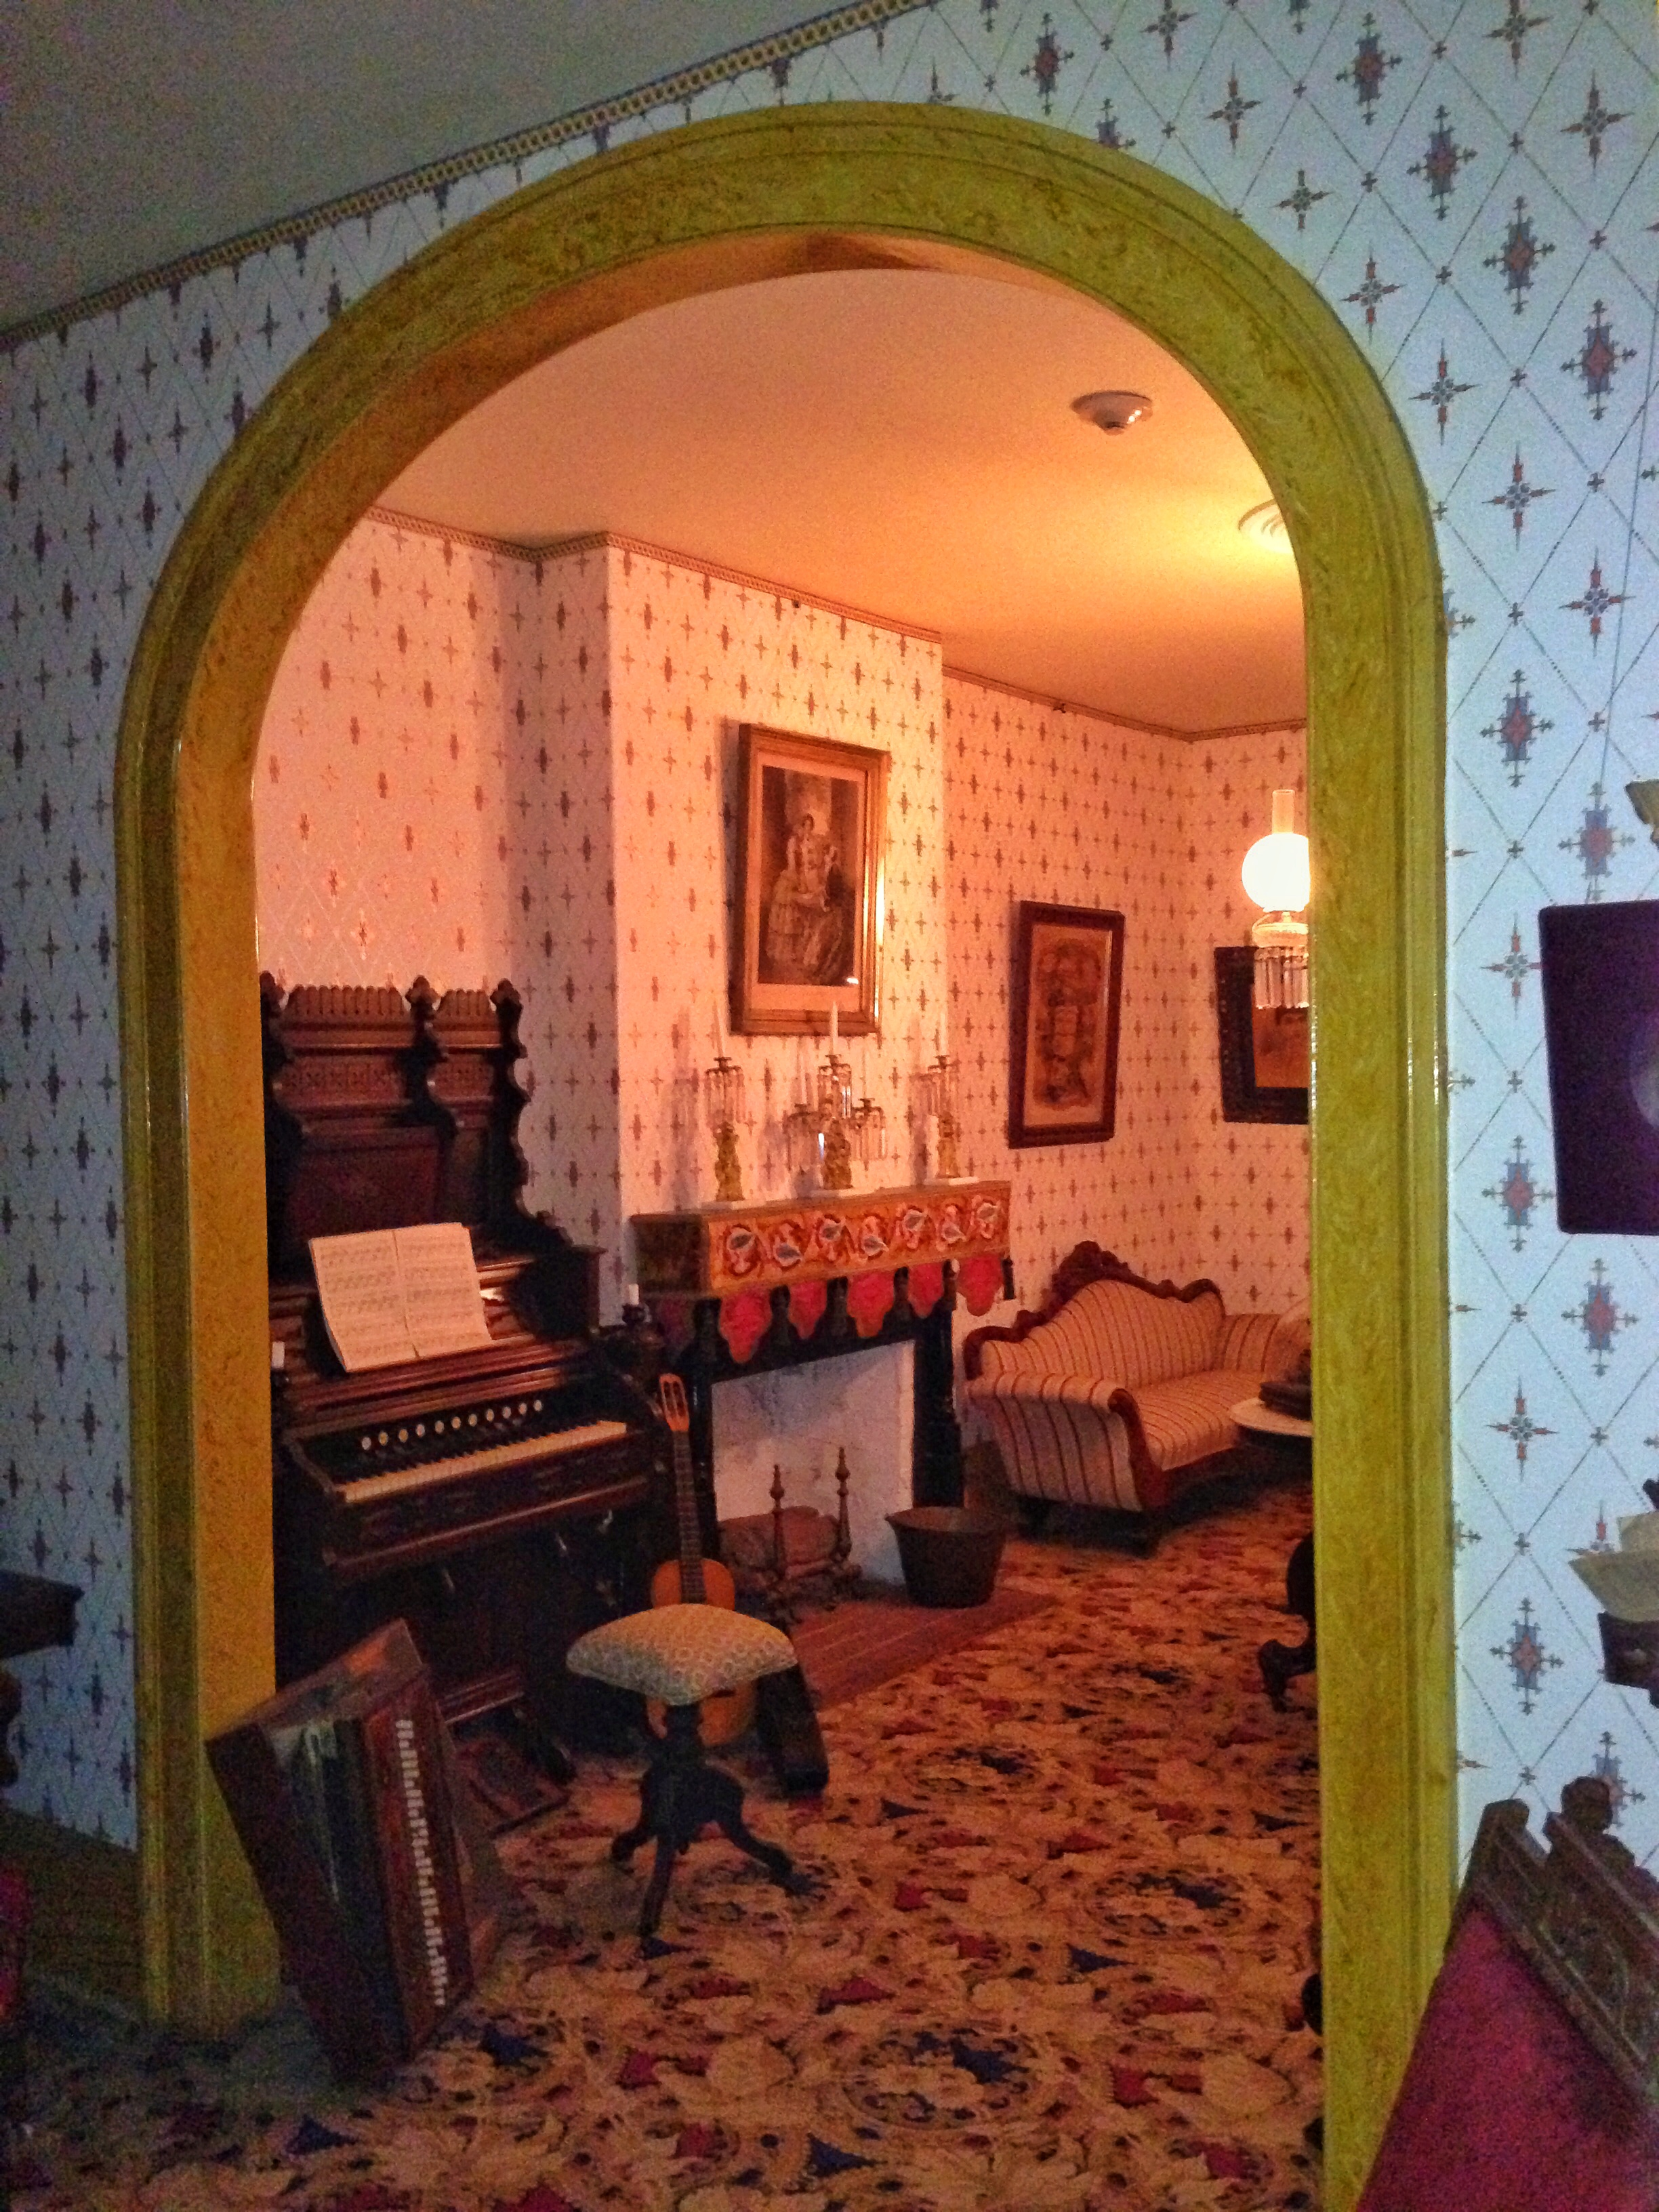 The Whaley House - reportedly one of the most haunted spots in the entire United States.